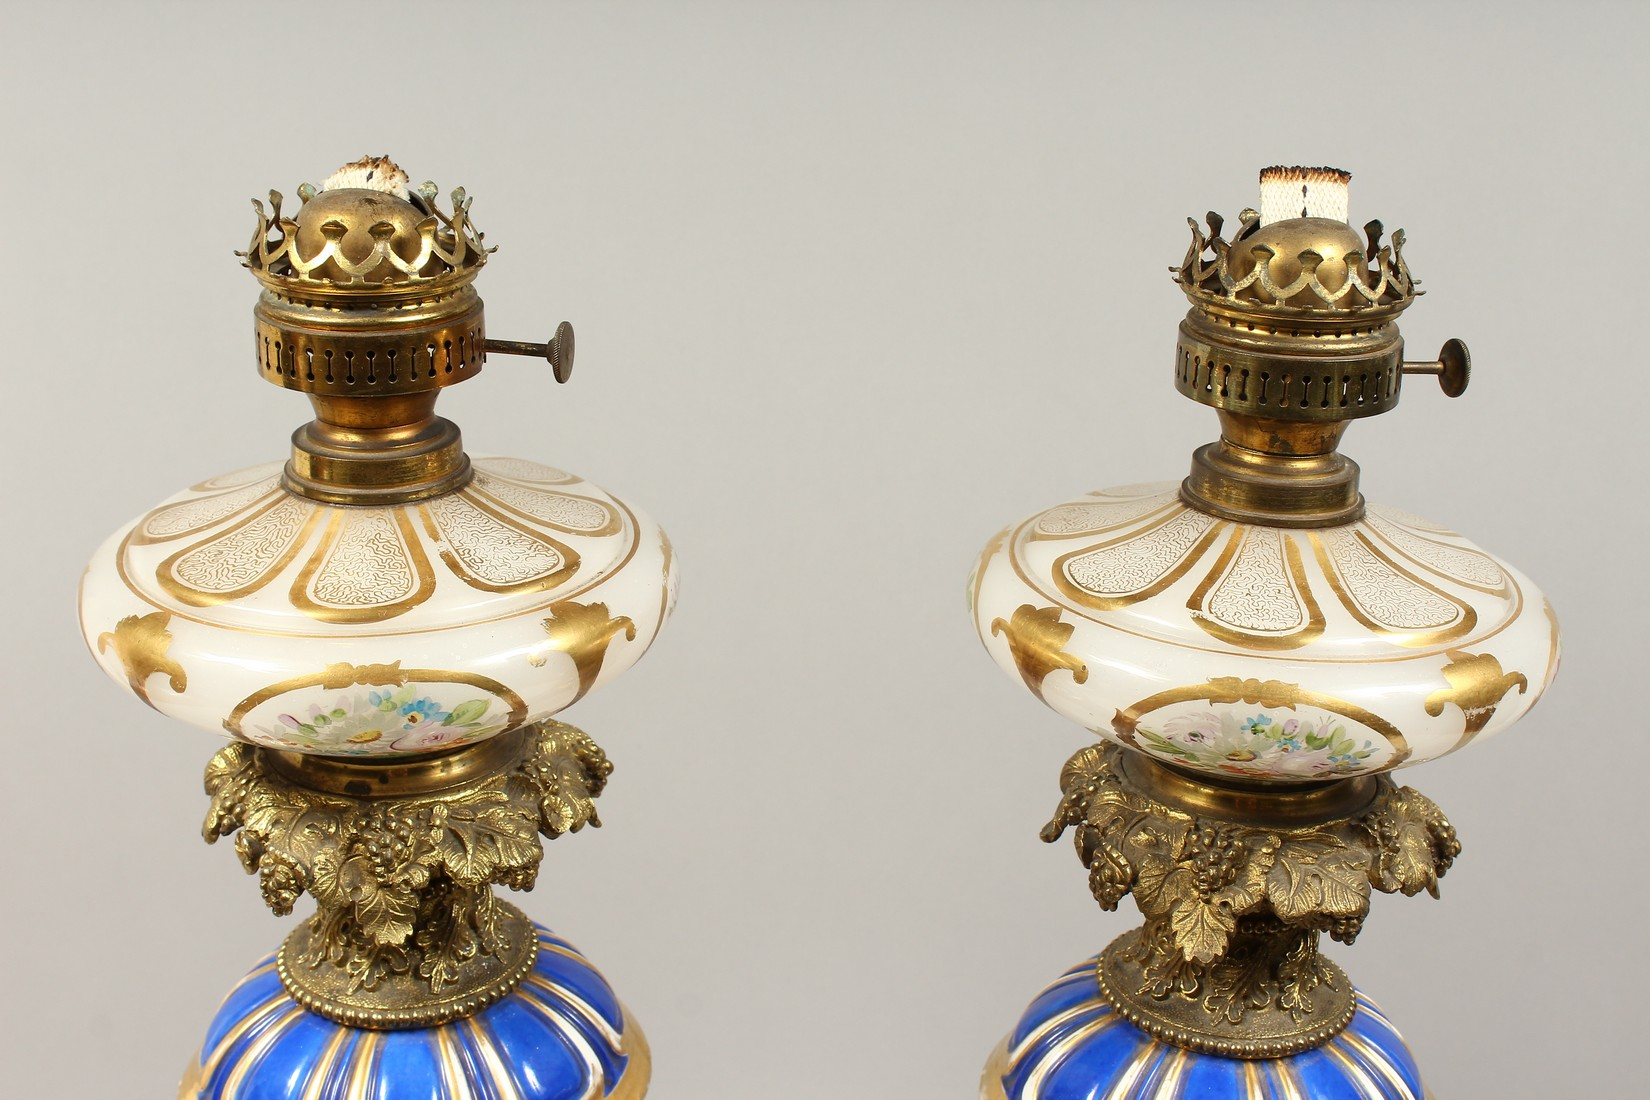 A SUPERB PAIR OF 19TH CENTURY FRENCH PORCELAIN AND GILT BRONZE LAMPS ON STANDS, painted with - Image 2 of 24